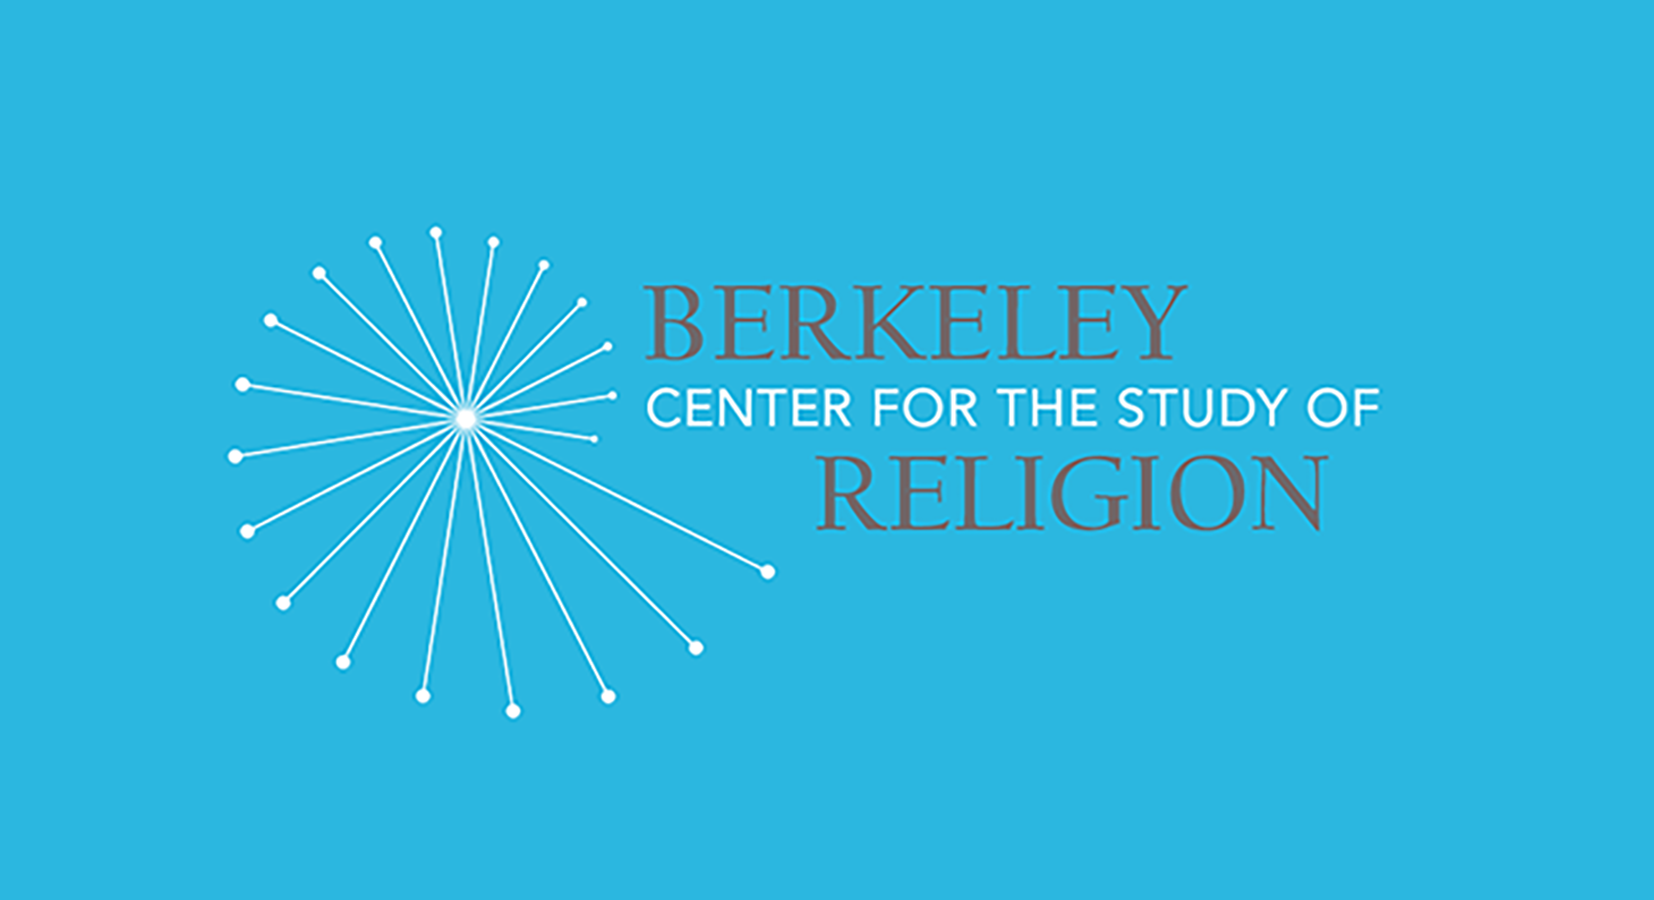 Berkeley Center for the Study of Religion